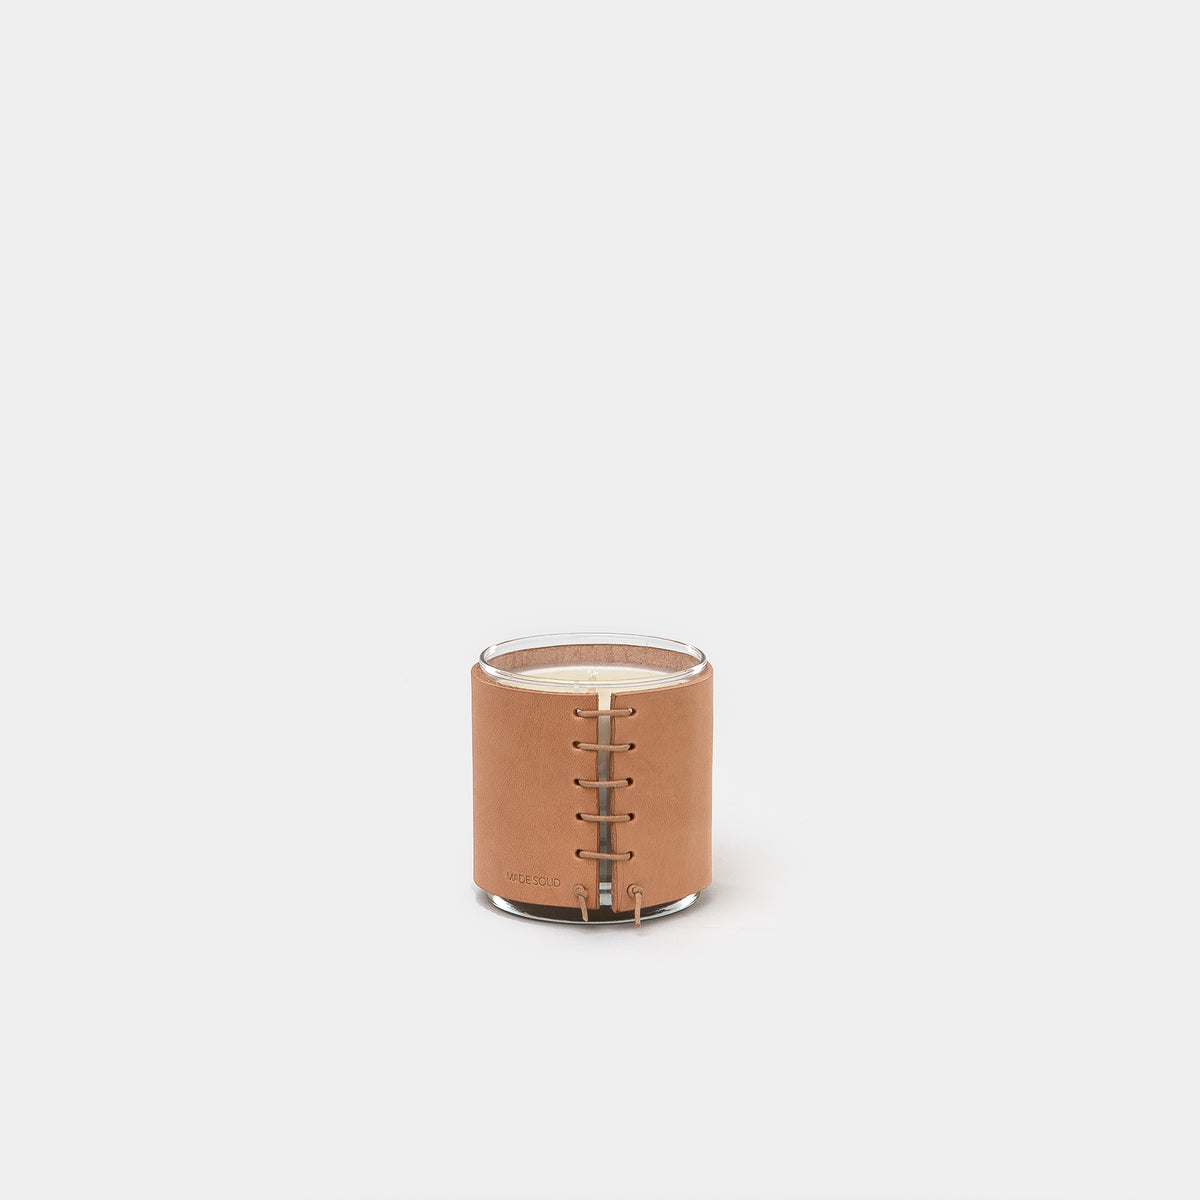 Load image into Gallery viewer, Leather Wrapped Candle - Leather - Apothecary - Candles – Shoppe Amber Interiors